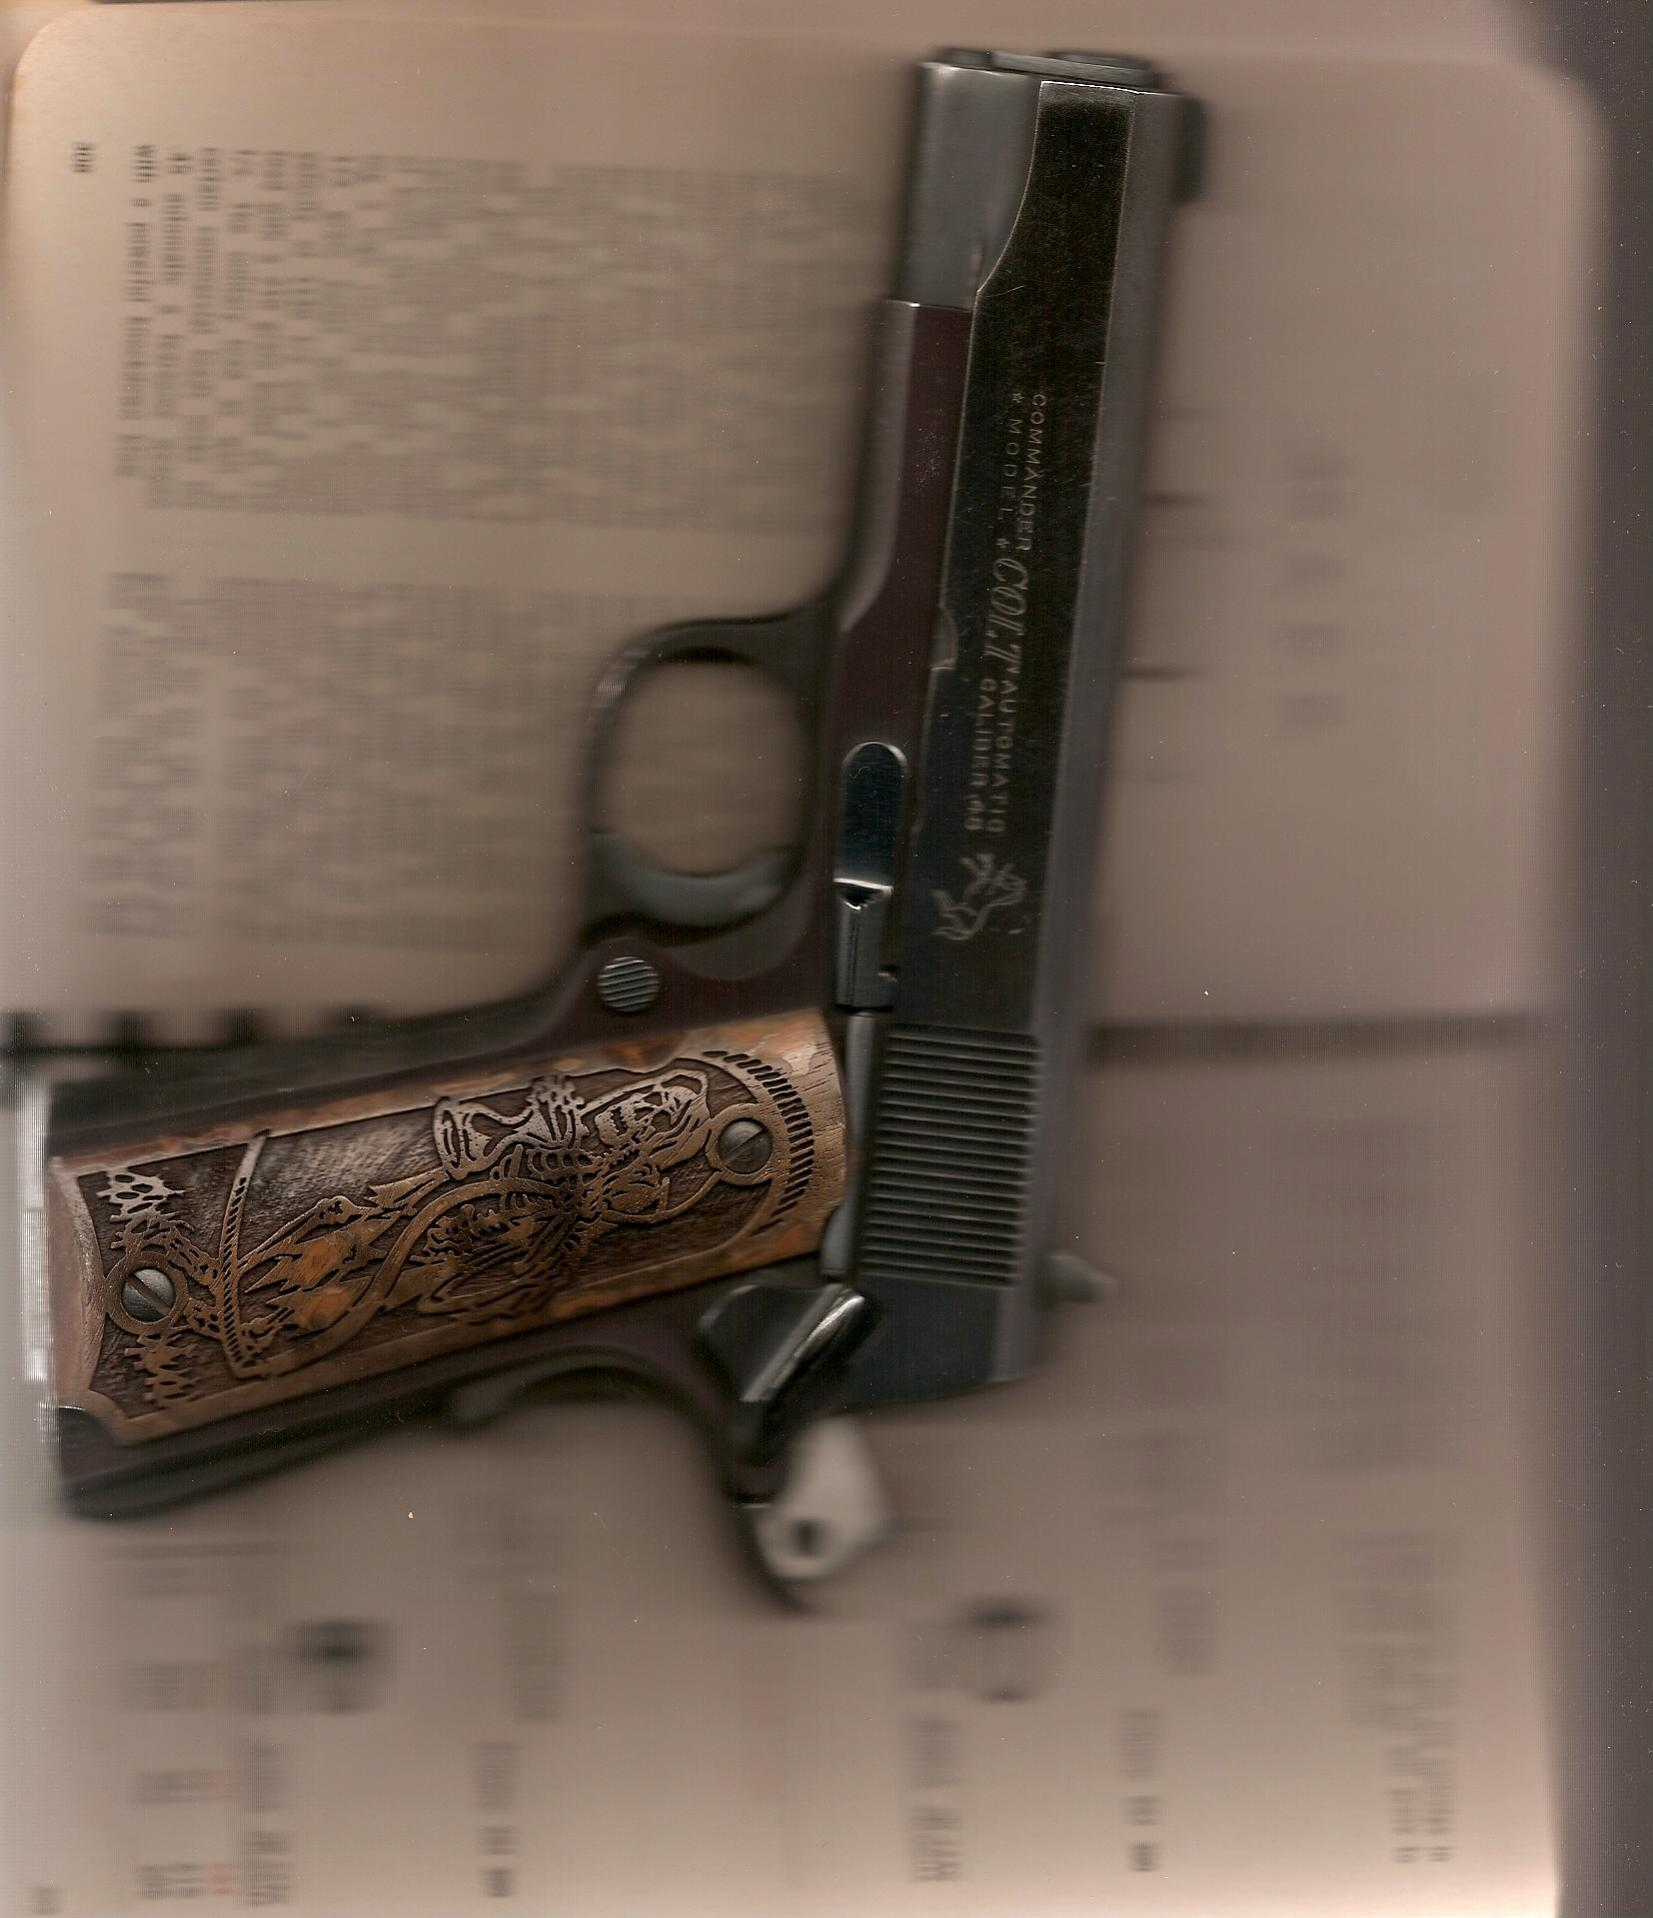 Colt commander owners need advice-commander.jpg